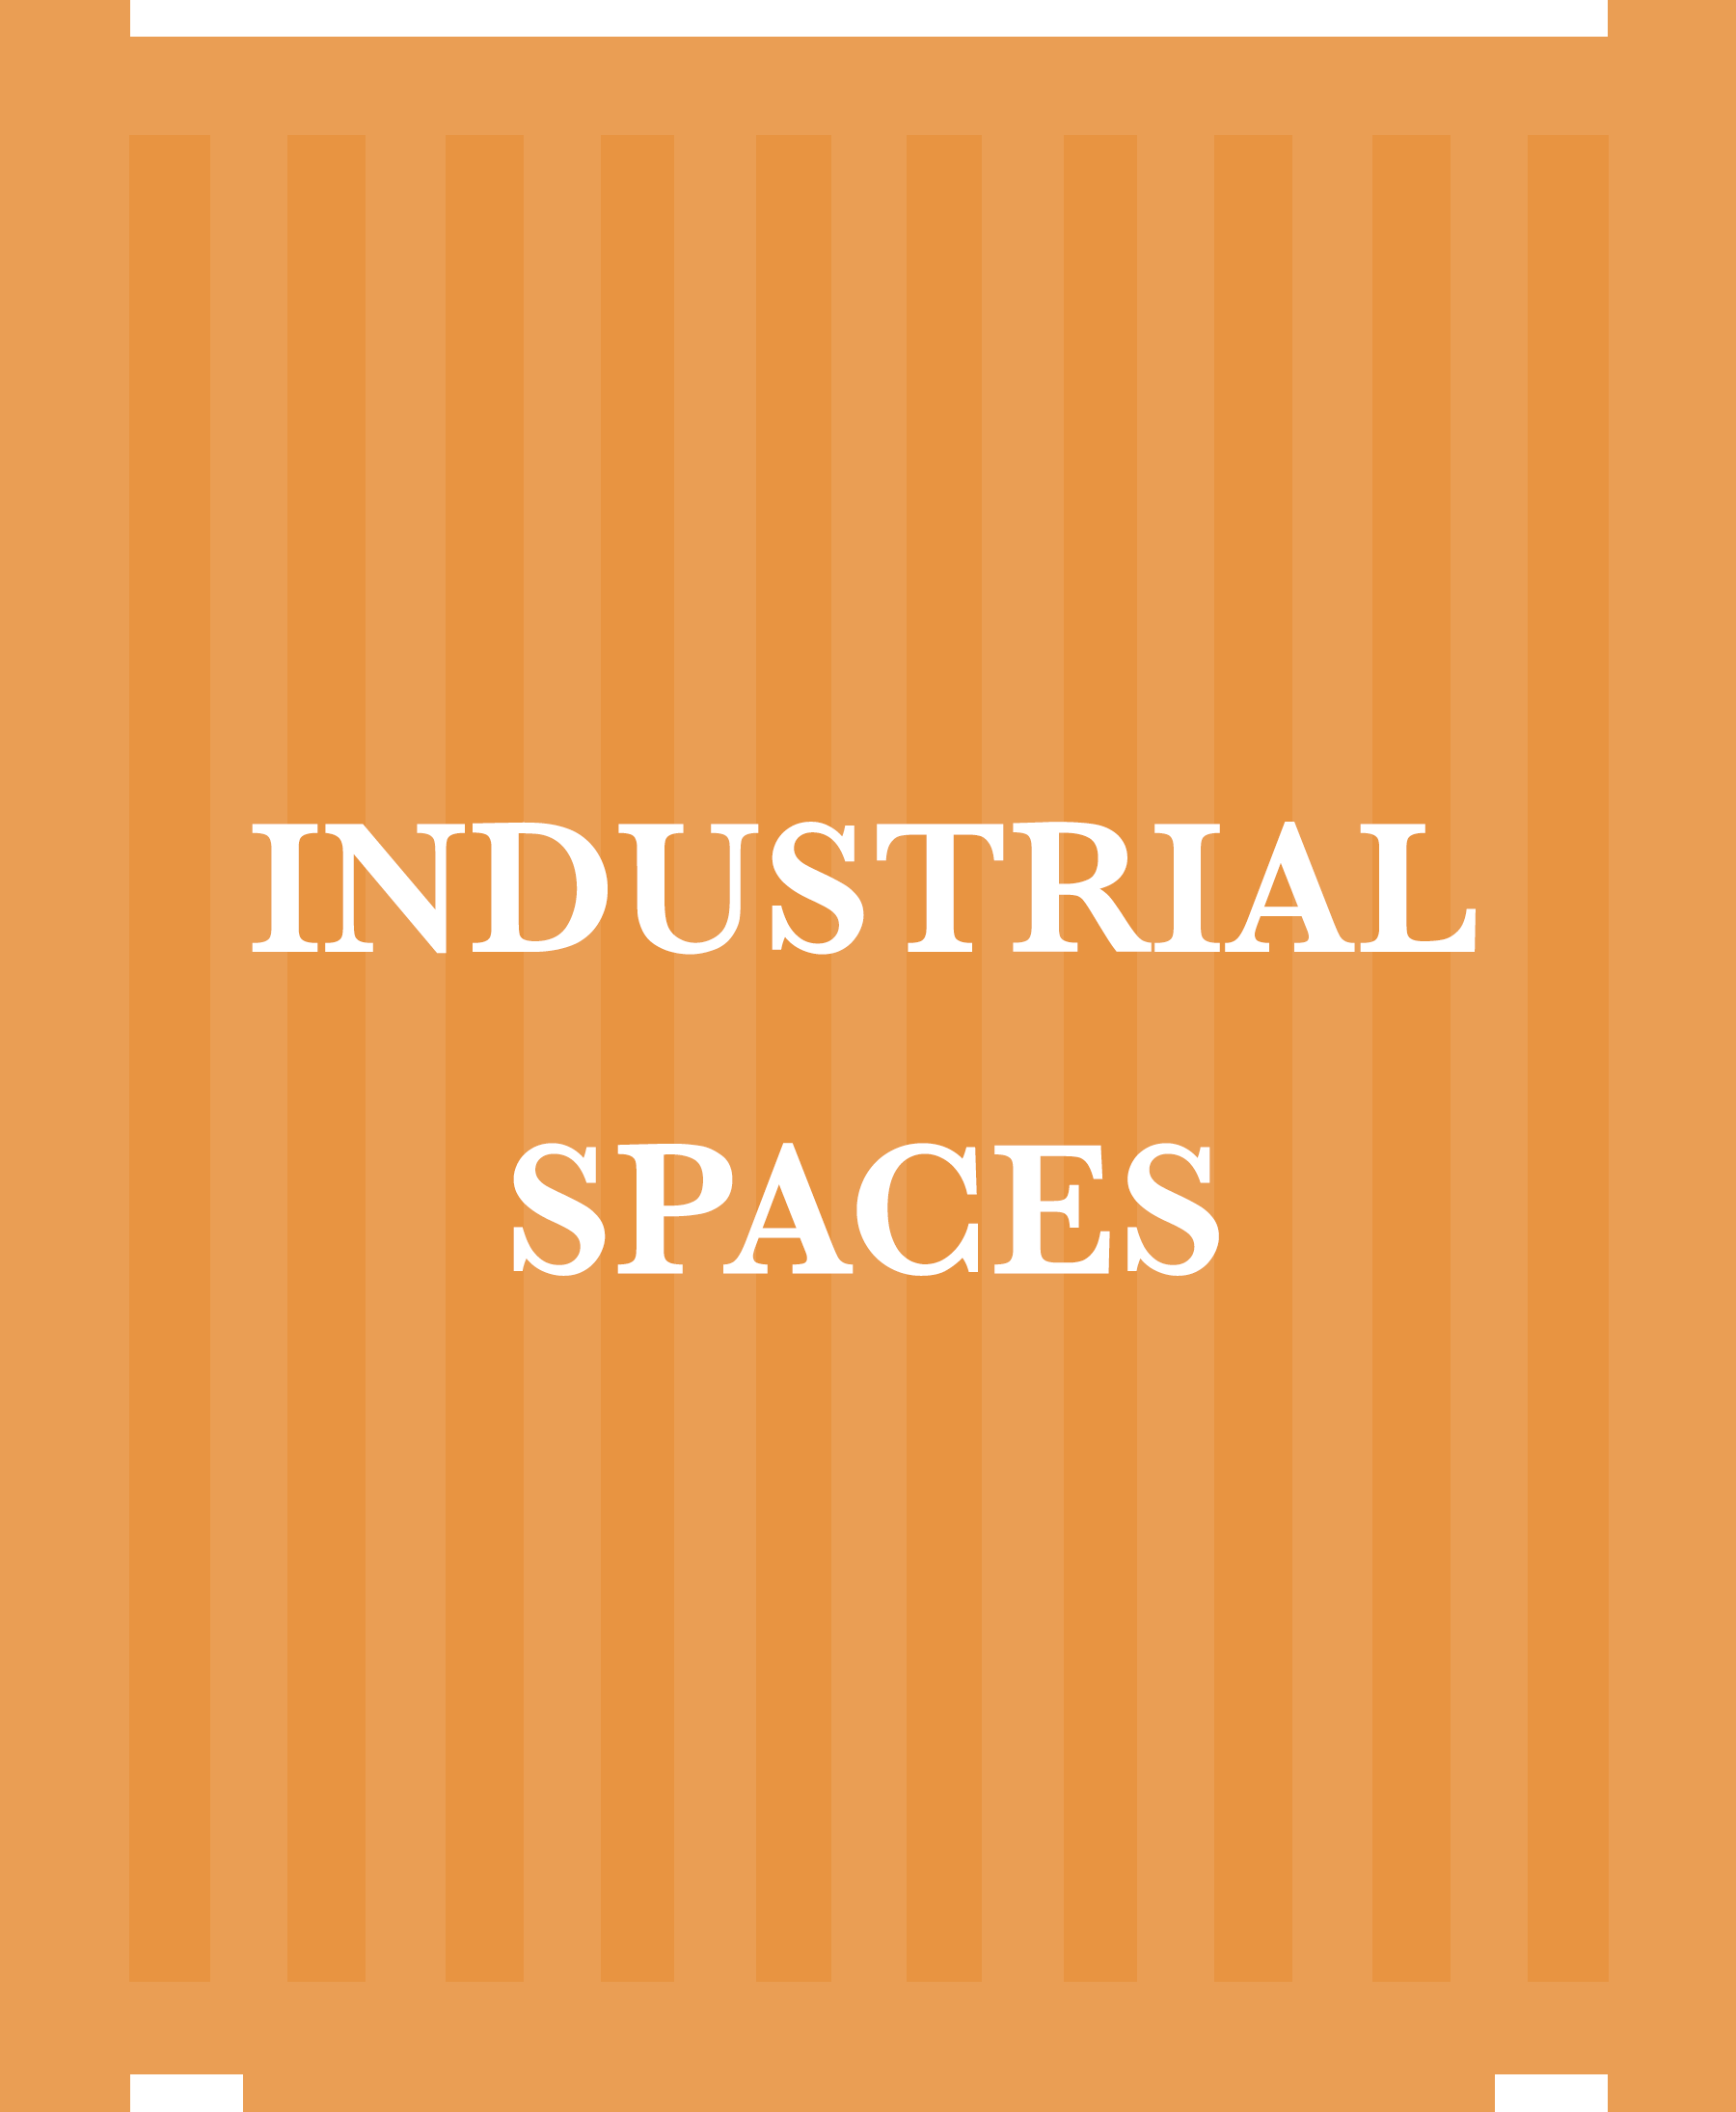 5INDUSTRIAL SPACES